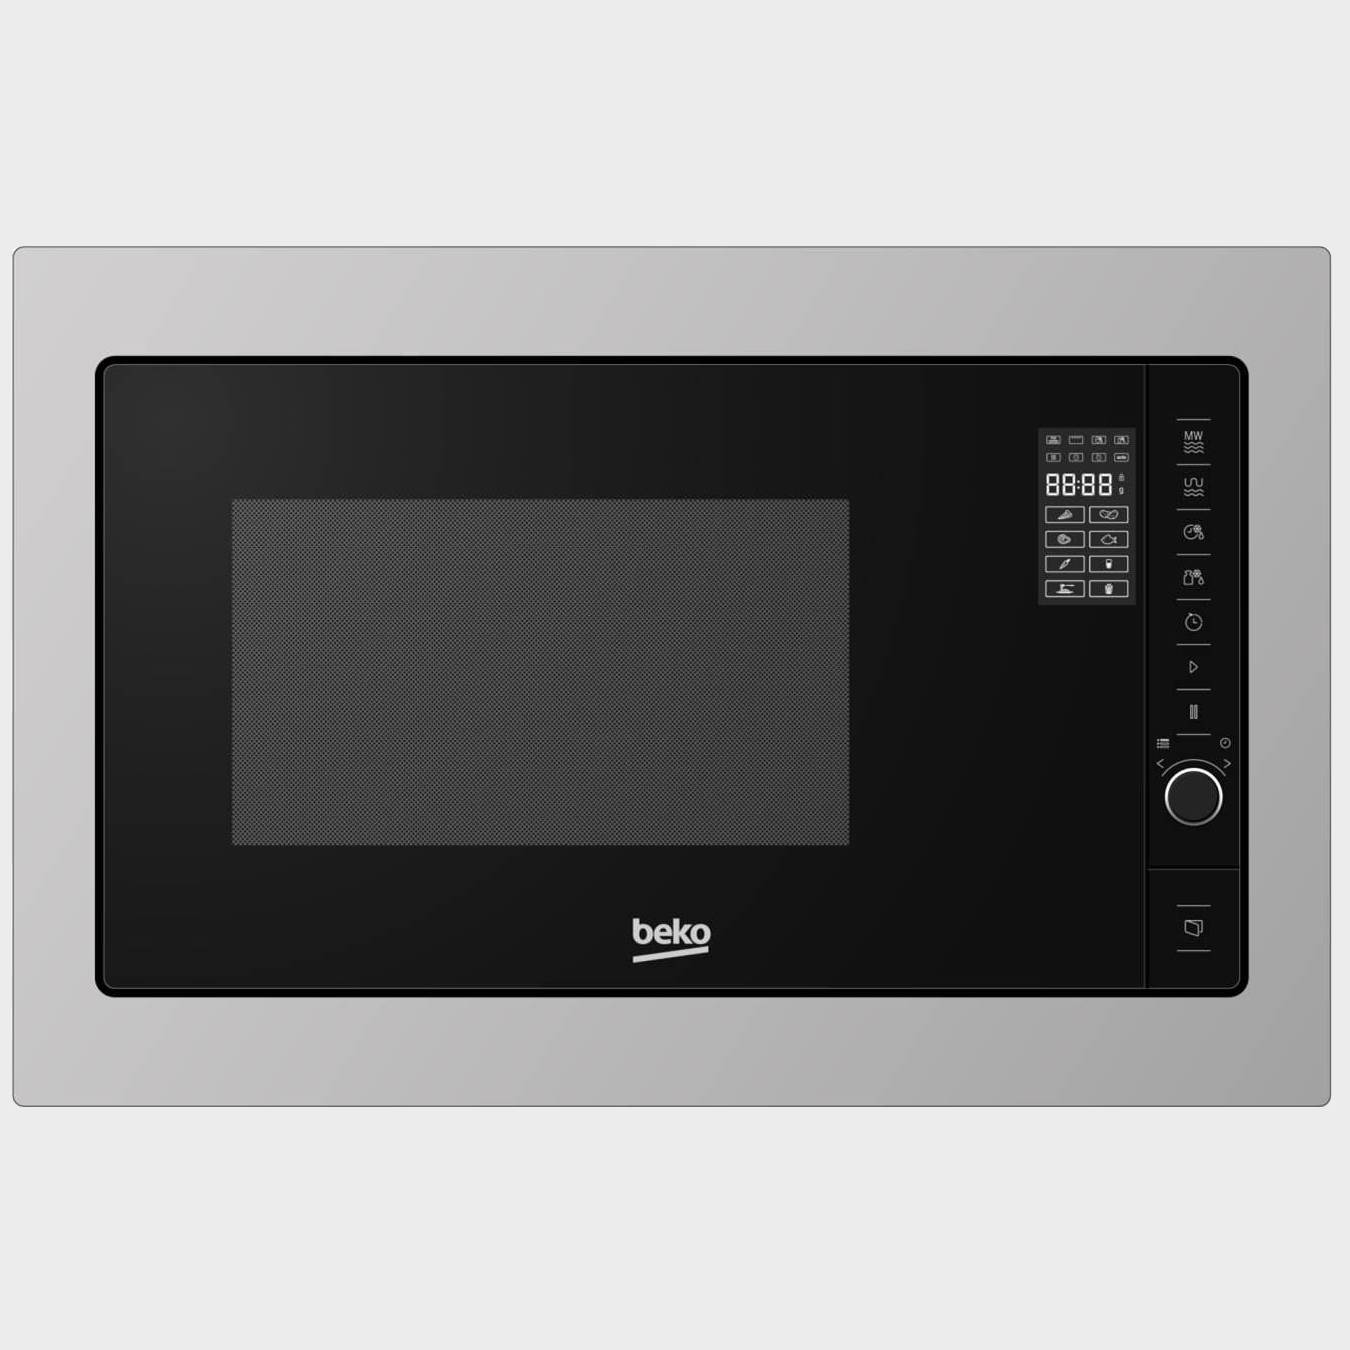 Beko mgb25332bg microondas integrable 25 ls 1450w grill for Microondas integrable